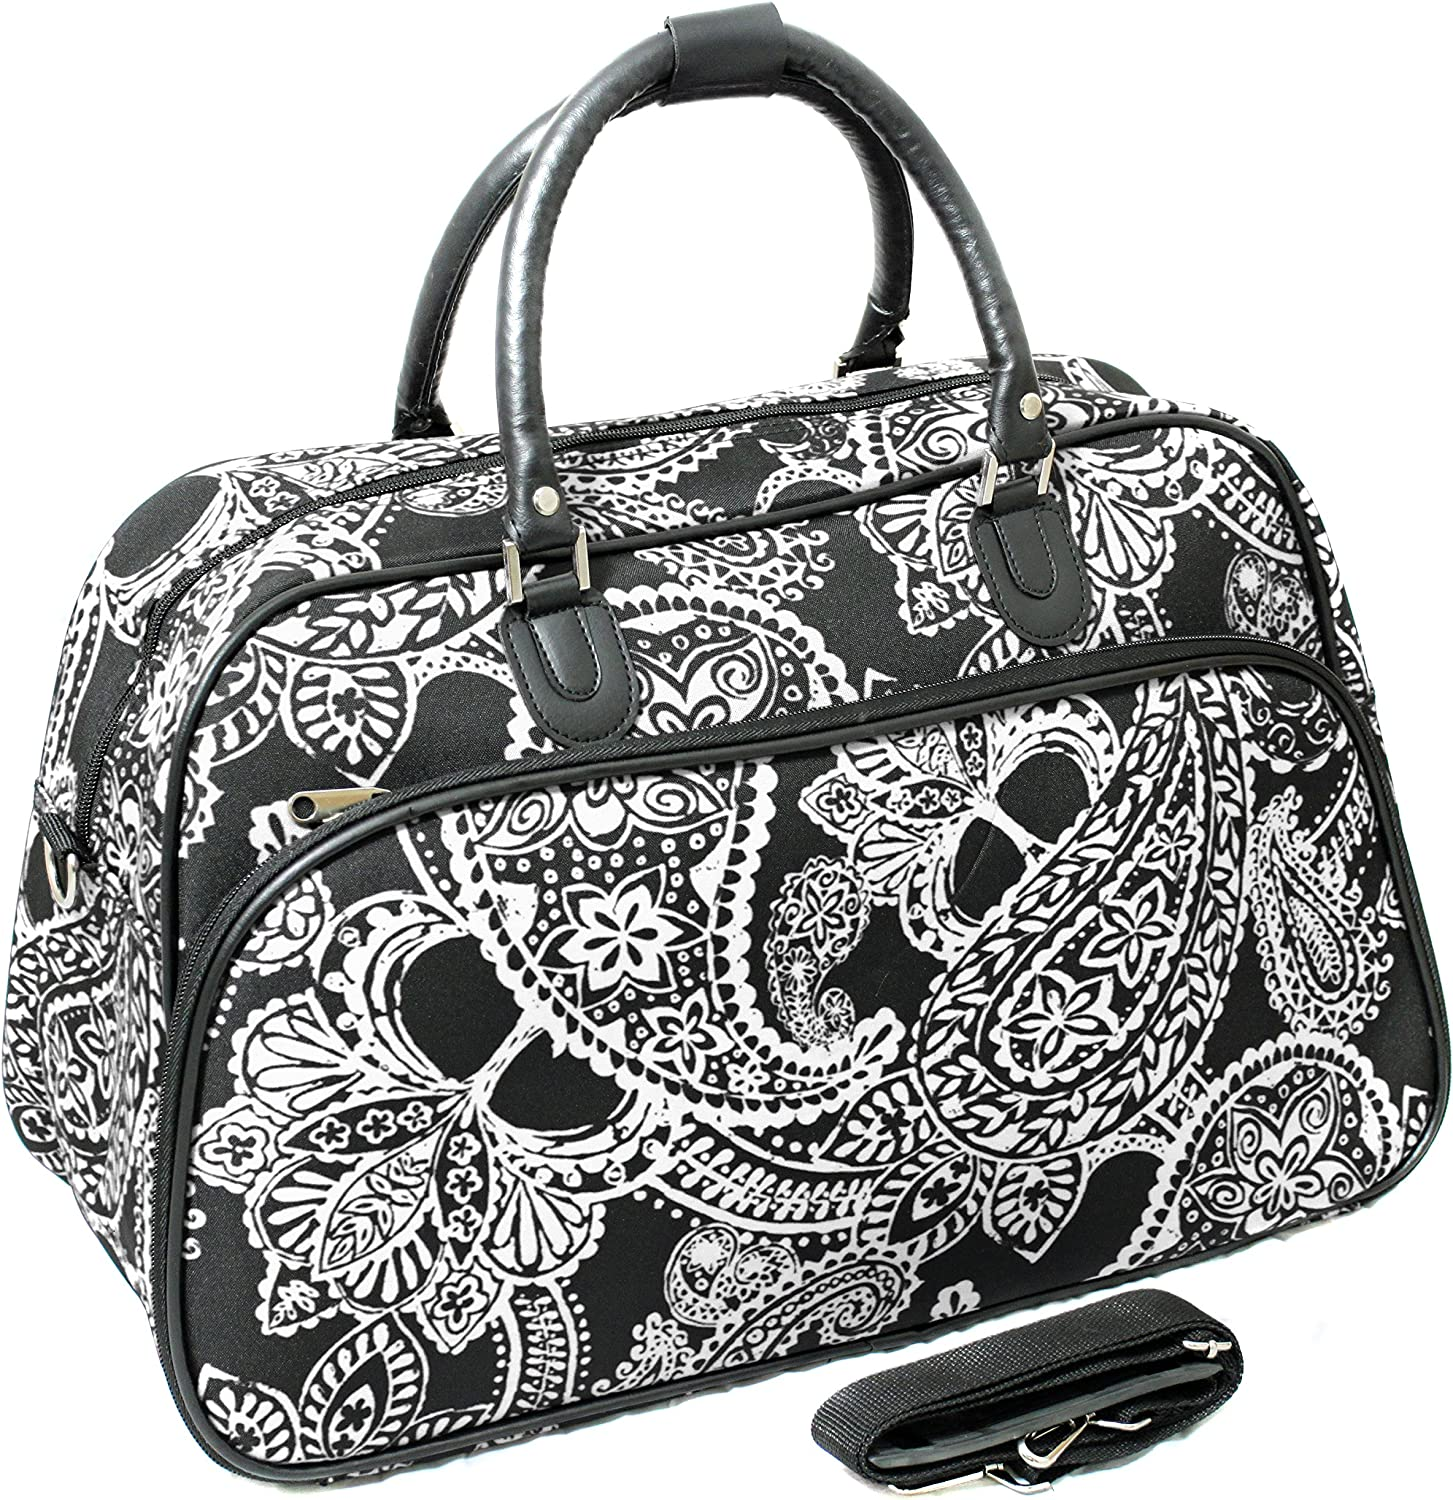 World Traveler 21 Inch Carry On Shoulder Tote Duffel Bag Black White Paisley One Size Travel Duffels